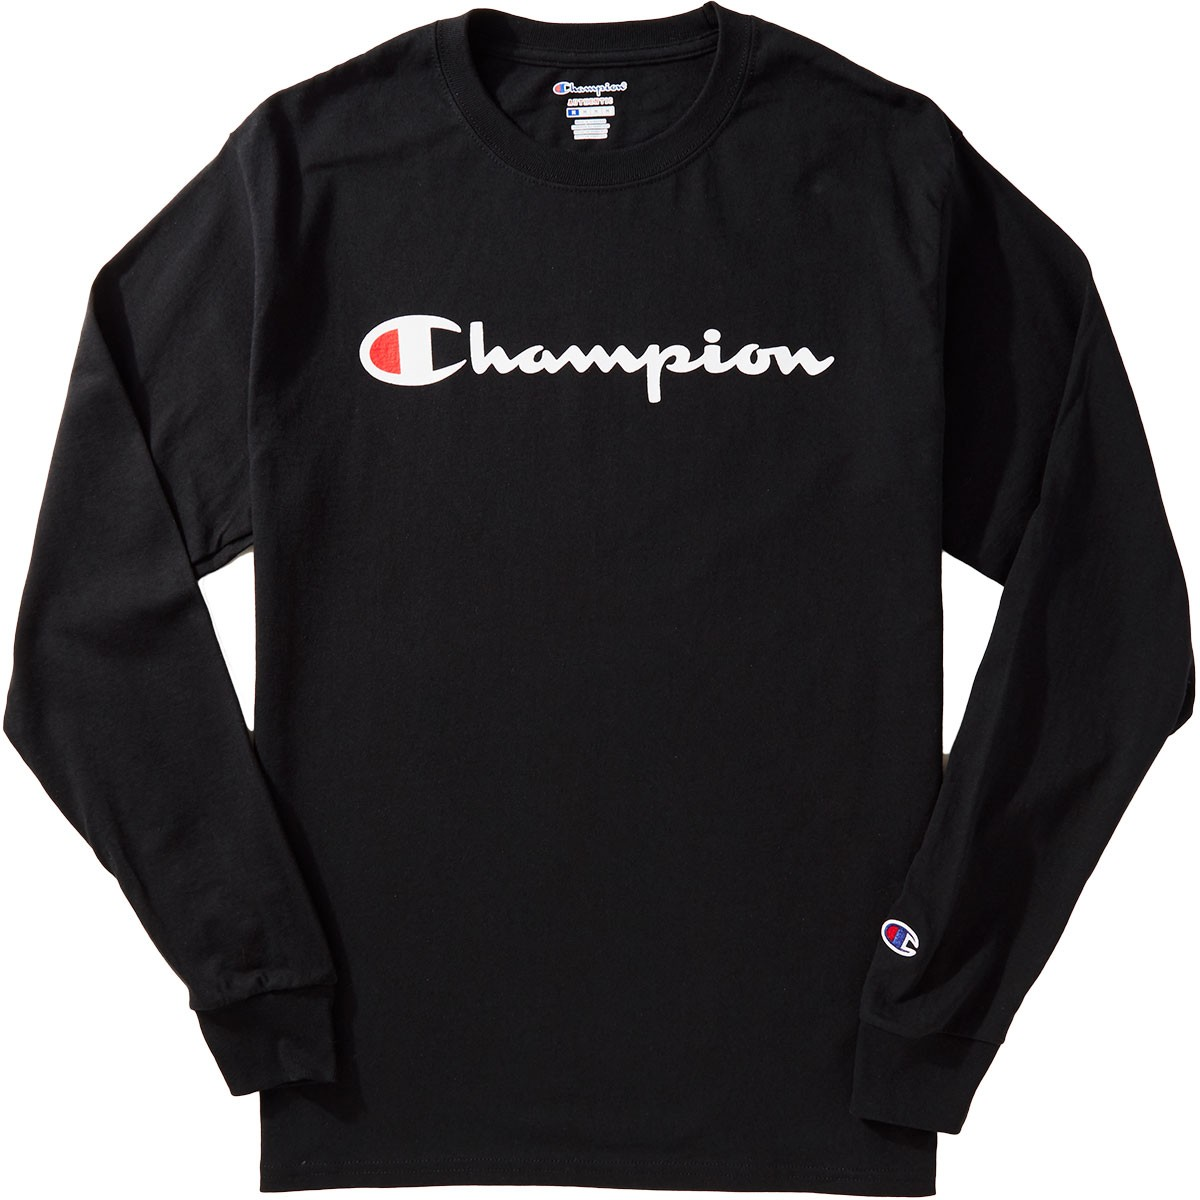 Champion Logo Long Sleeve T-Shirt - Black f95b22e80c32